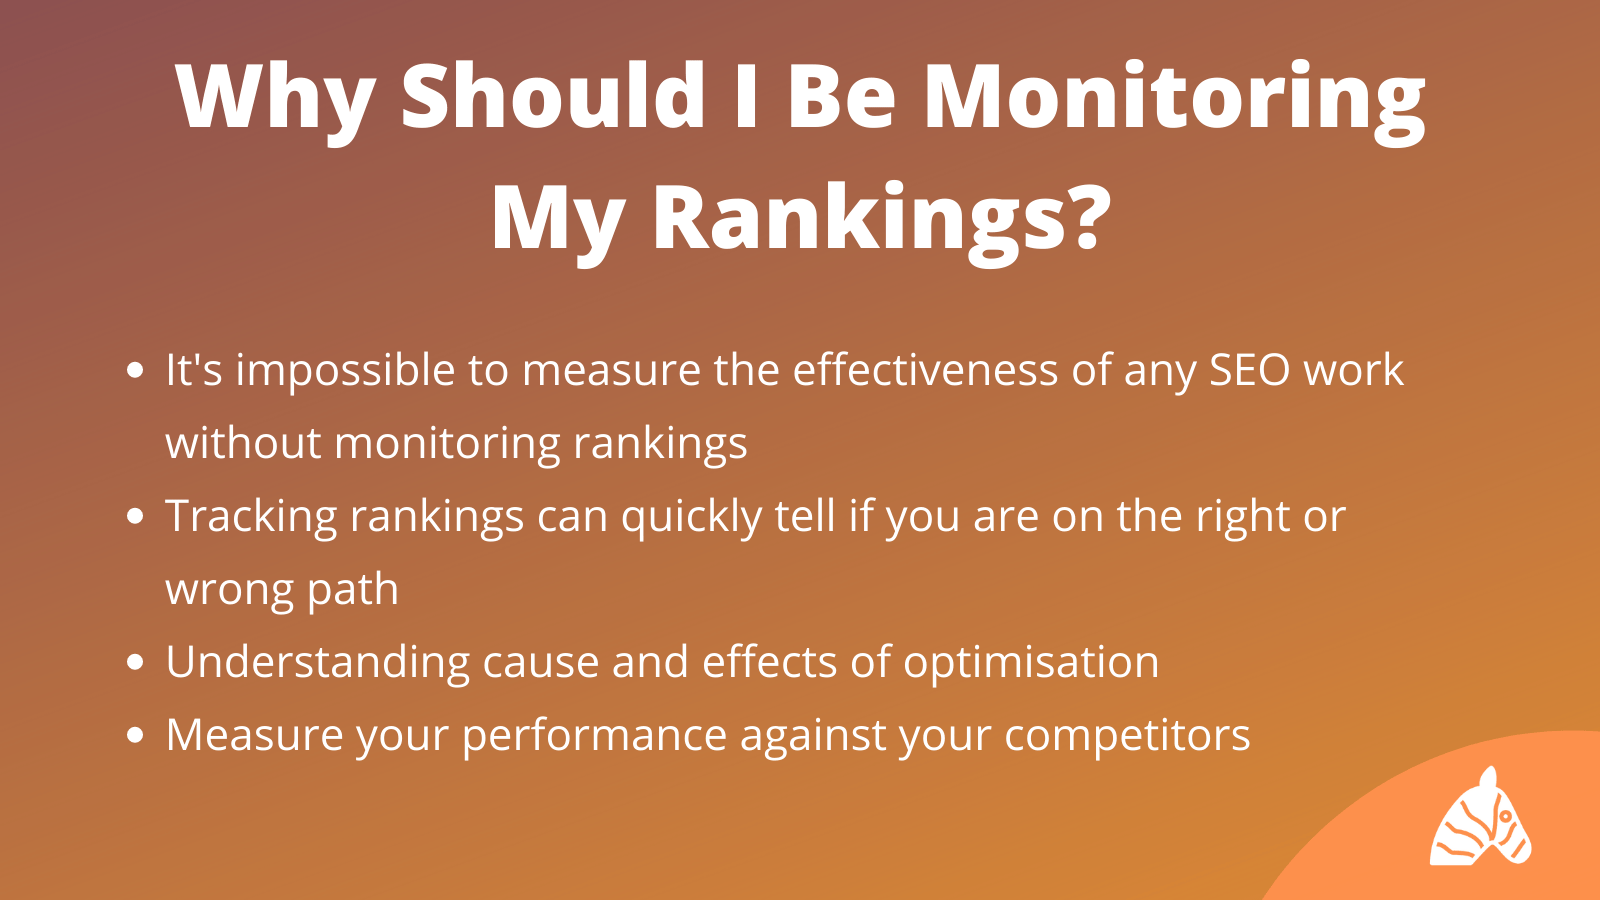 why should i track my rankings infographic